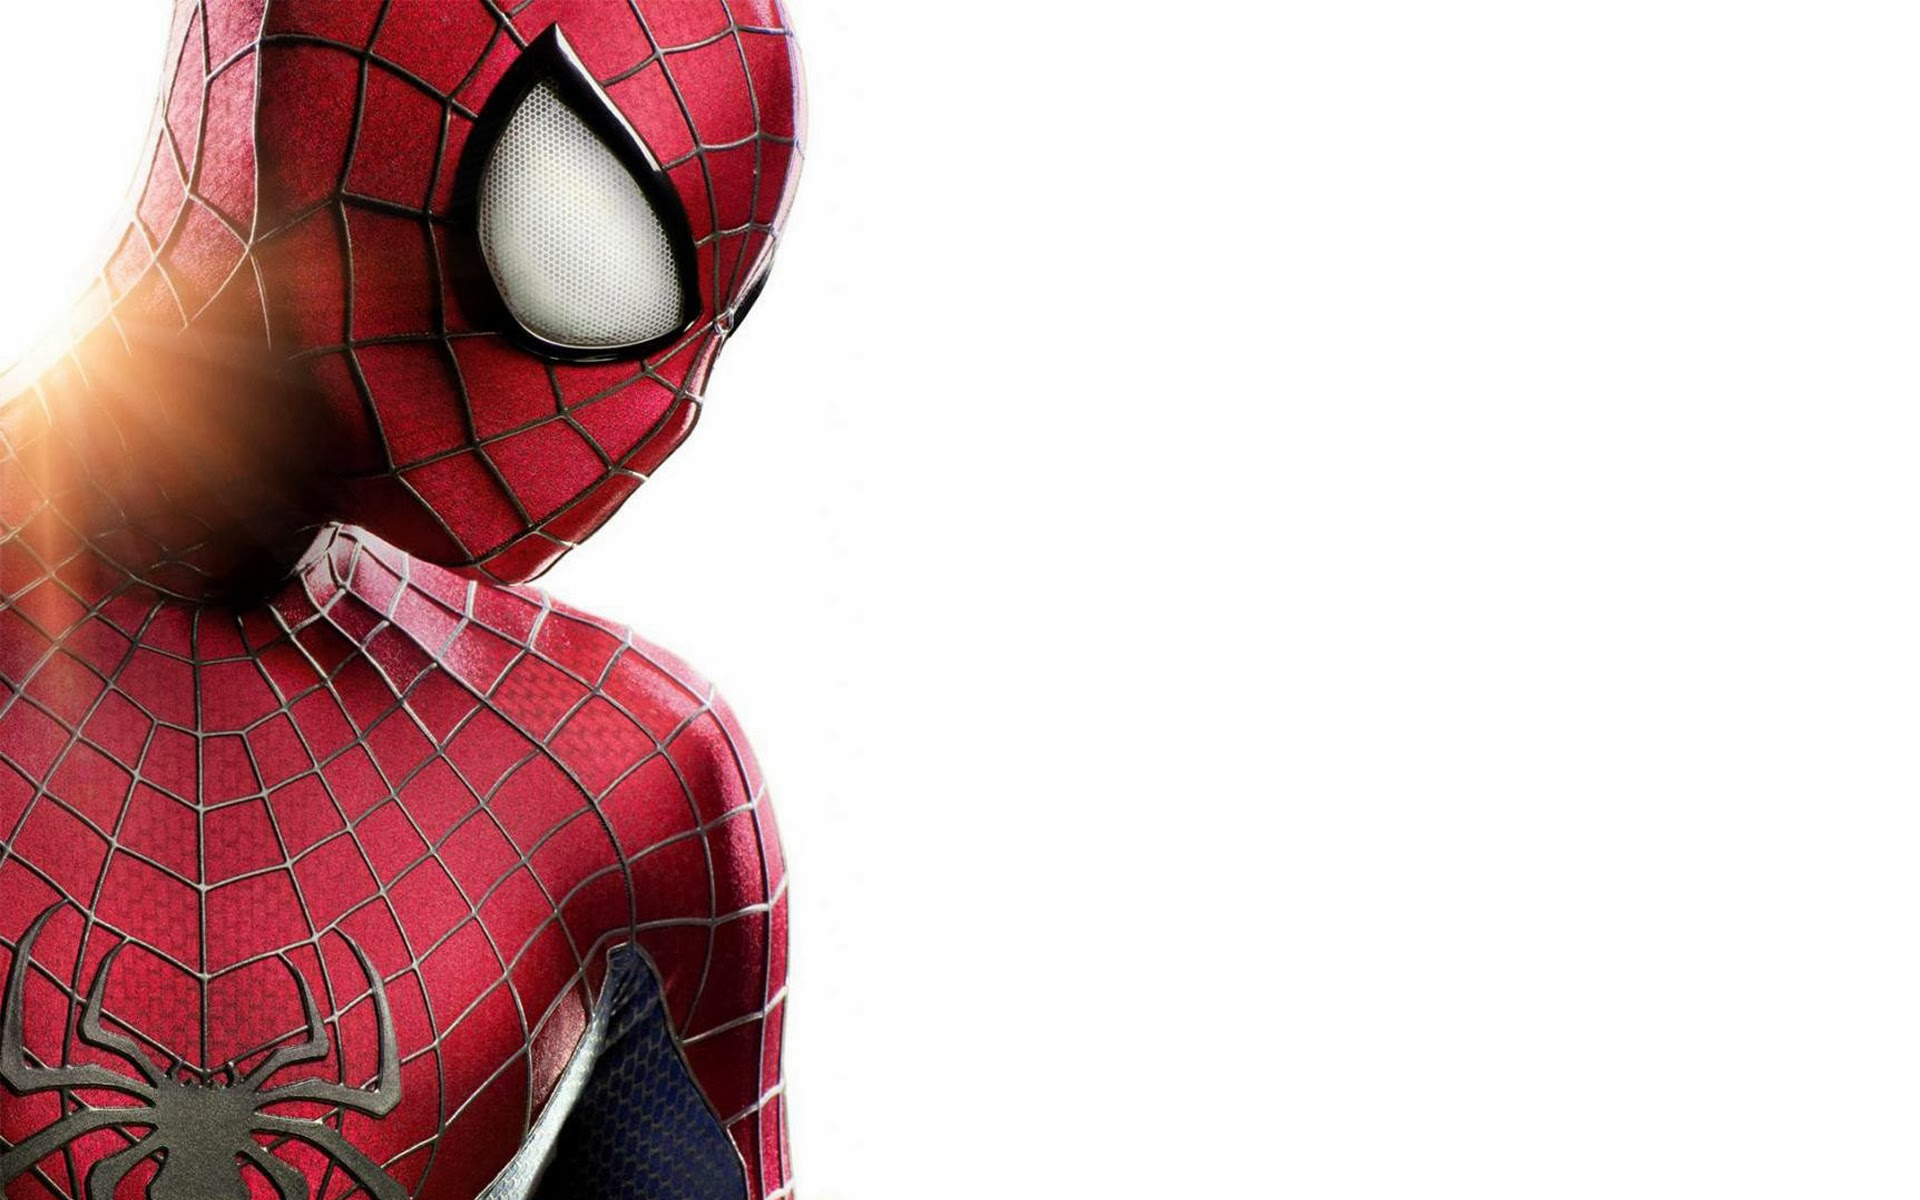 Spider-Man Images - Wallpaper, High Definition, High Quality ...